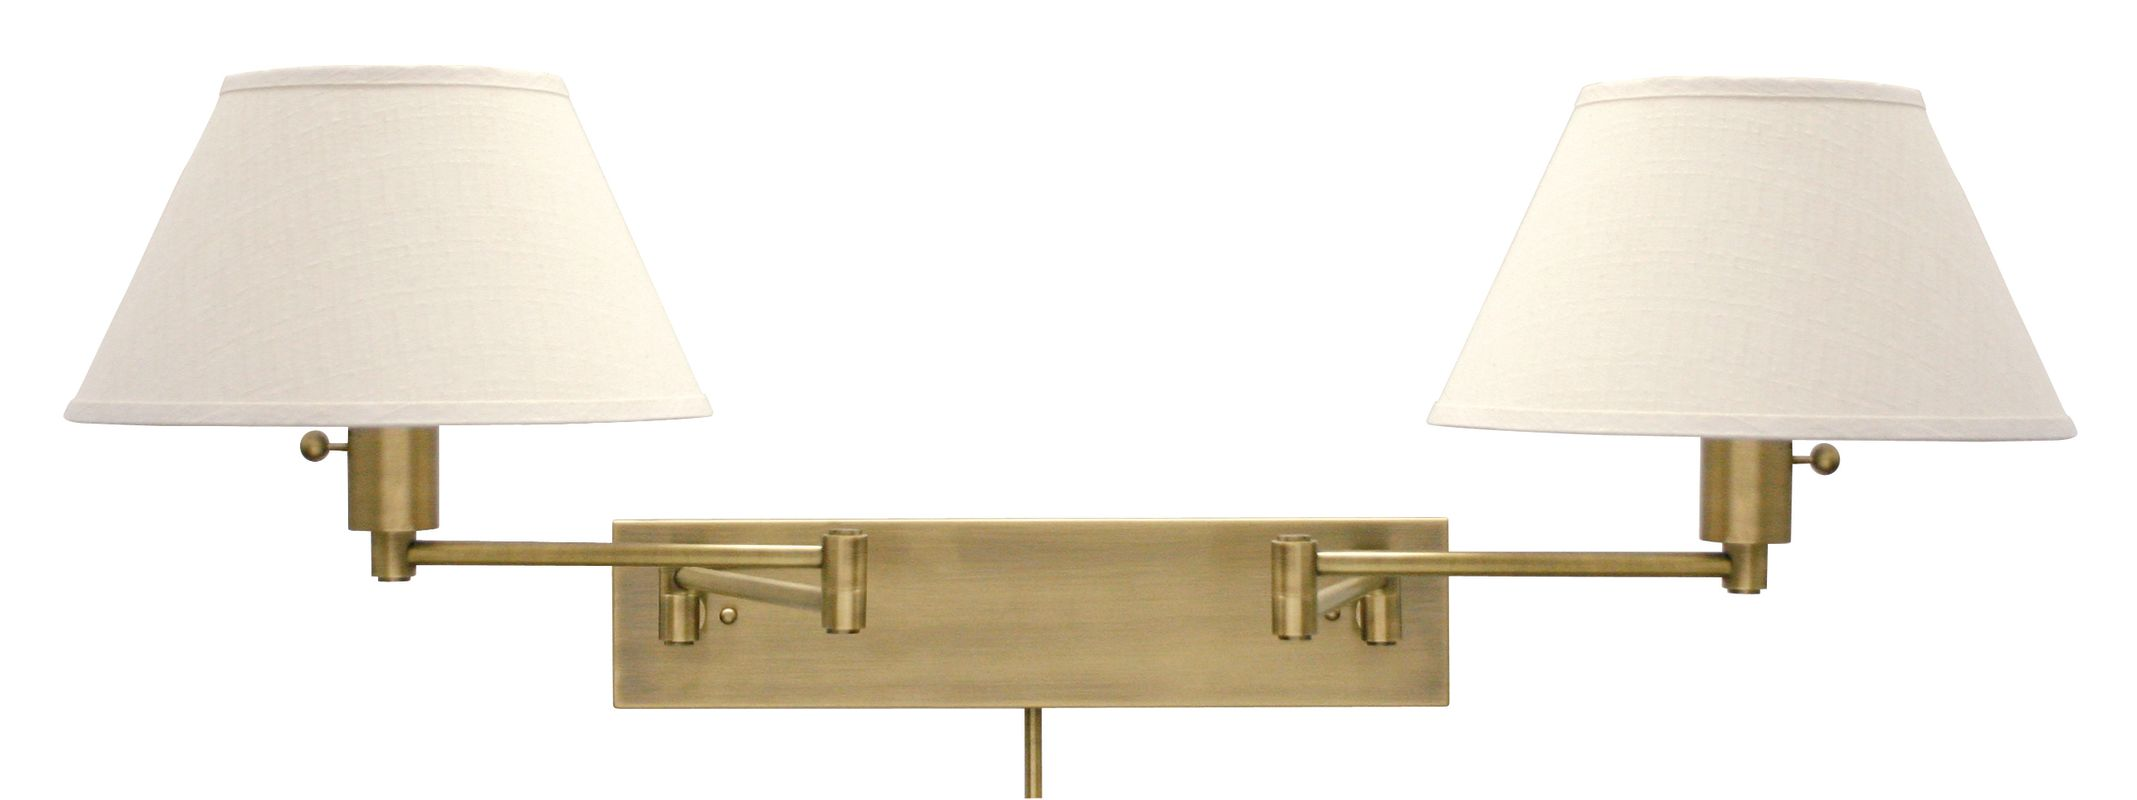 House of Troy WS14-2-71 Antique Brass / Off-White Linen Home / Office 2 Light Double Swing Arm ...